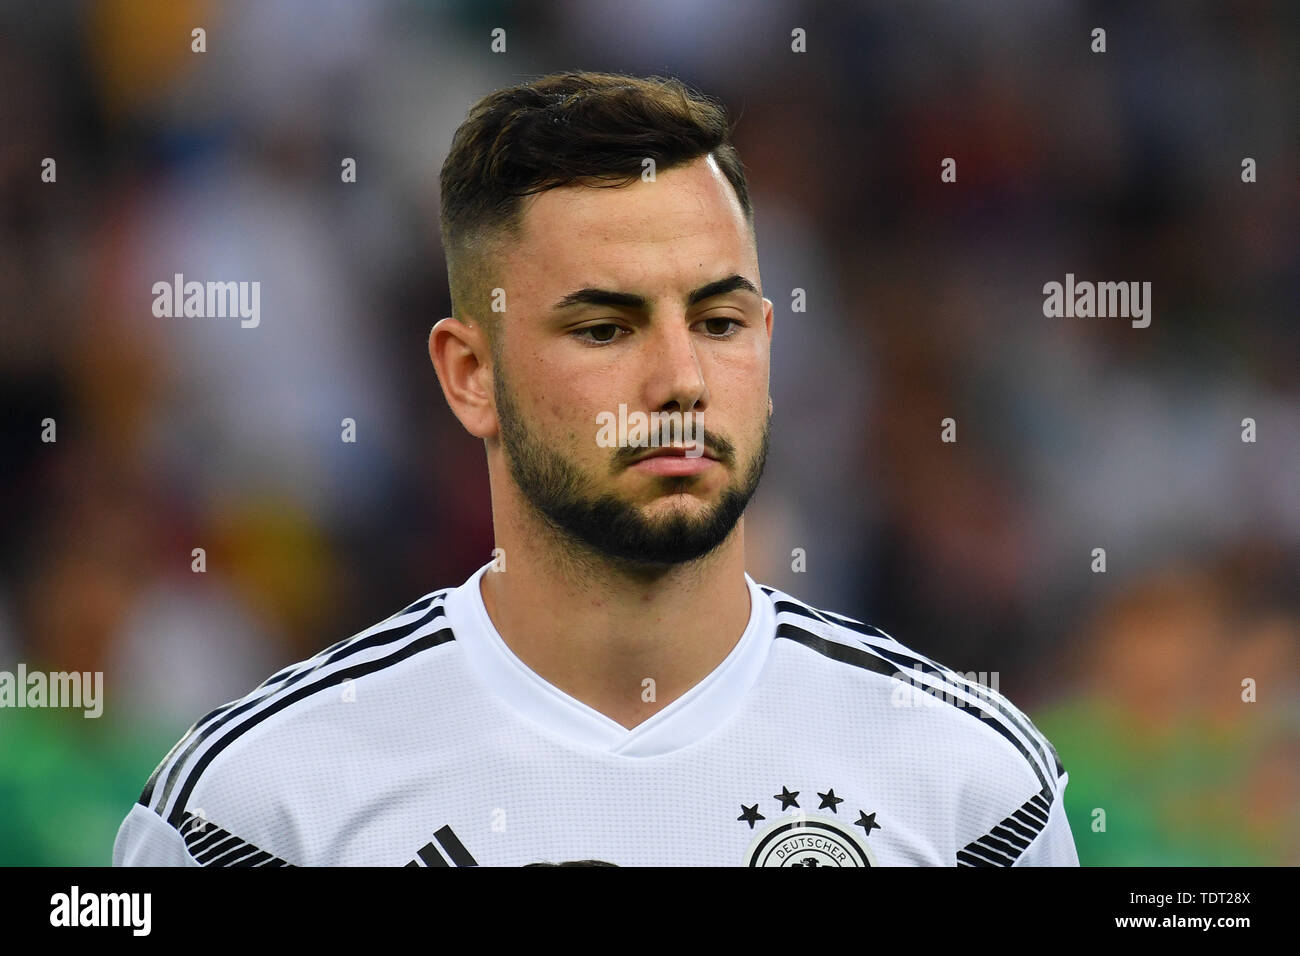 Marco RICHTER (GER), action, single image, single motif, portrait, portrait, portrait. Germany (GER) -Daenemark (DEN) 3-1, on 17.06.2019 Stadio Friuli Udine. Football U-21, UEFA Under21 European Championship in Italy/SanMarino from 16.-30.06.2019. | Usage worldwide - Stock Image